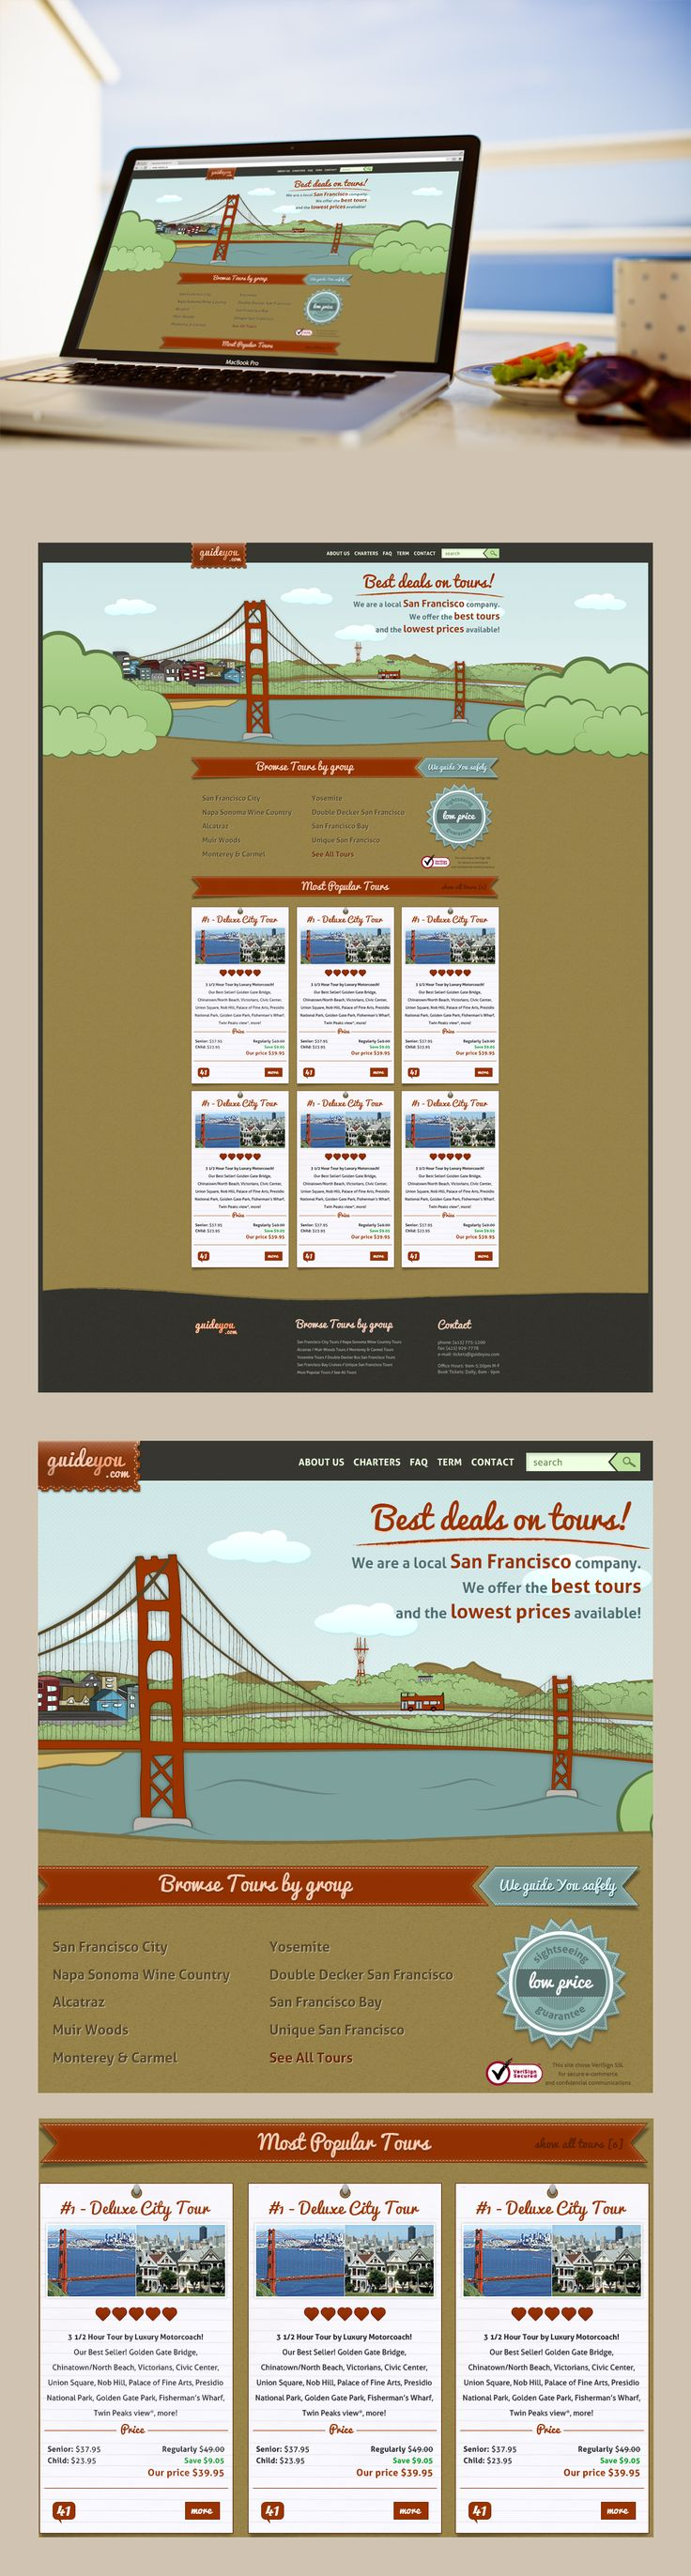 Guideyou | Webdesign | Retro